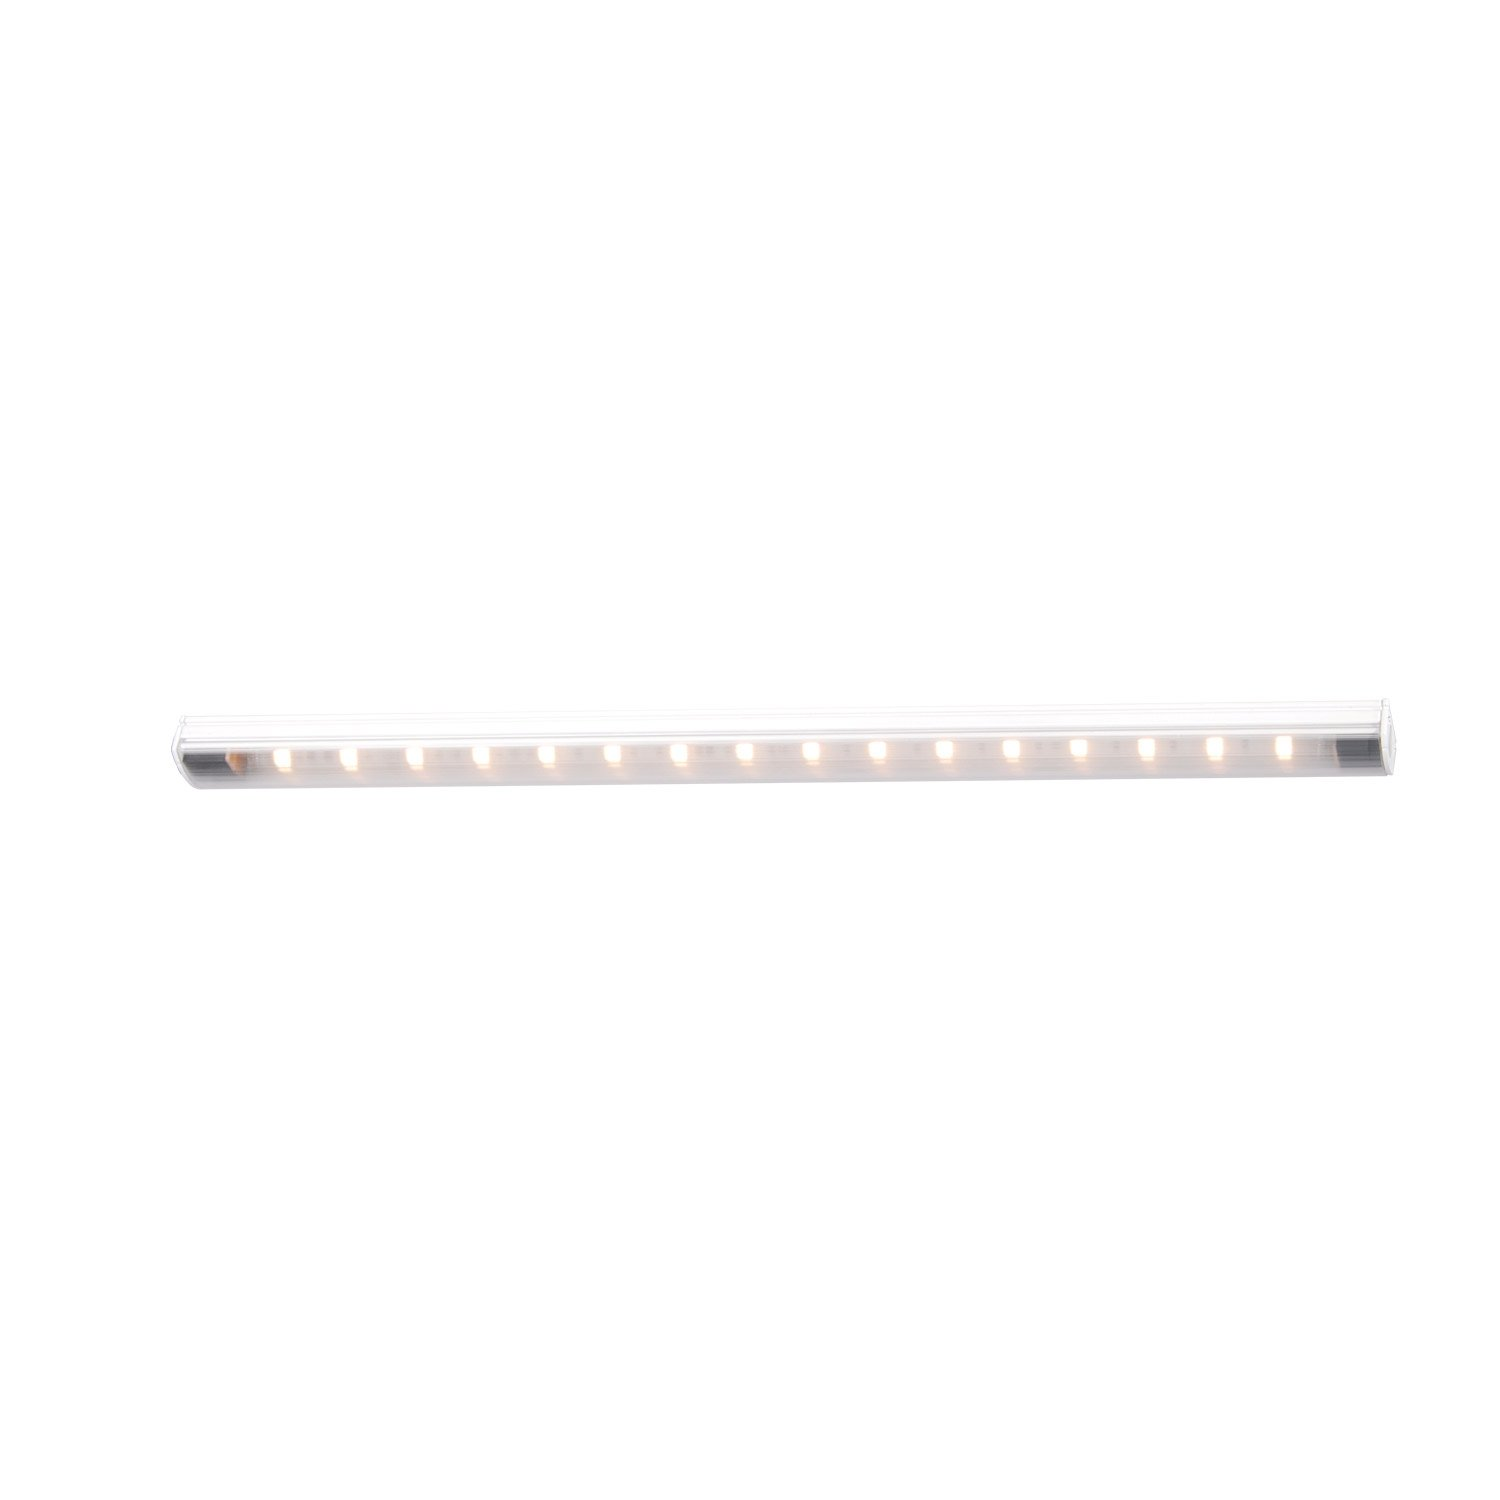 White Color Finish WAC Lighting LS-LED32-C-WT 31.25-Inch LED Strip Light with 4500k Temperature